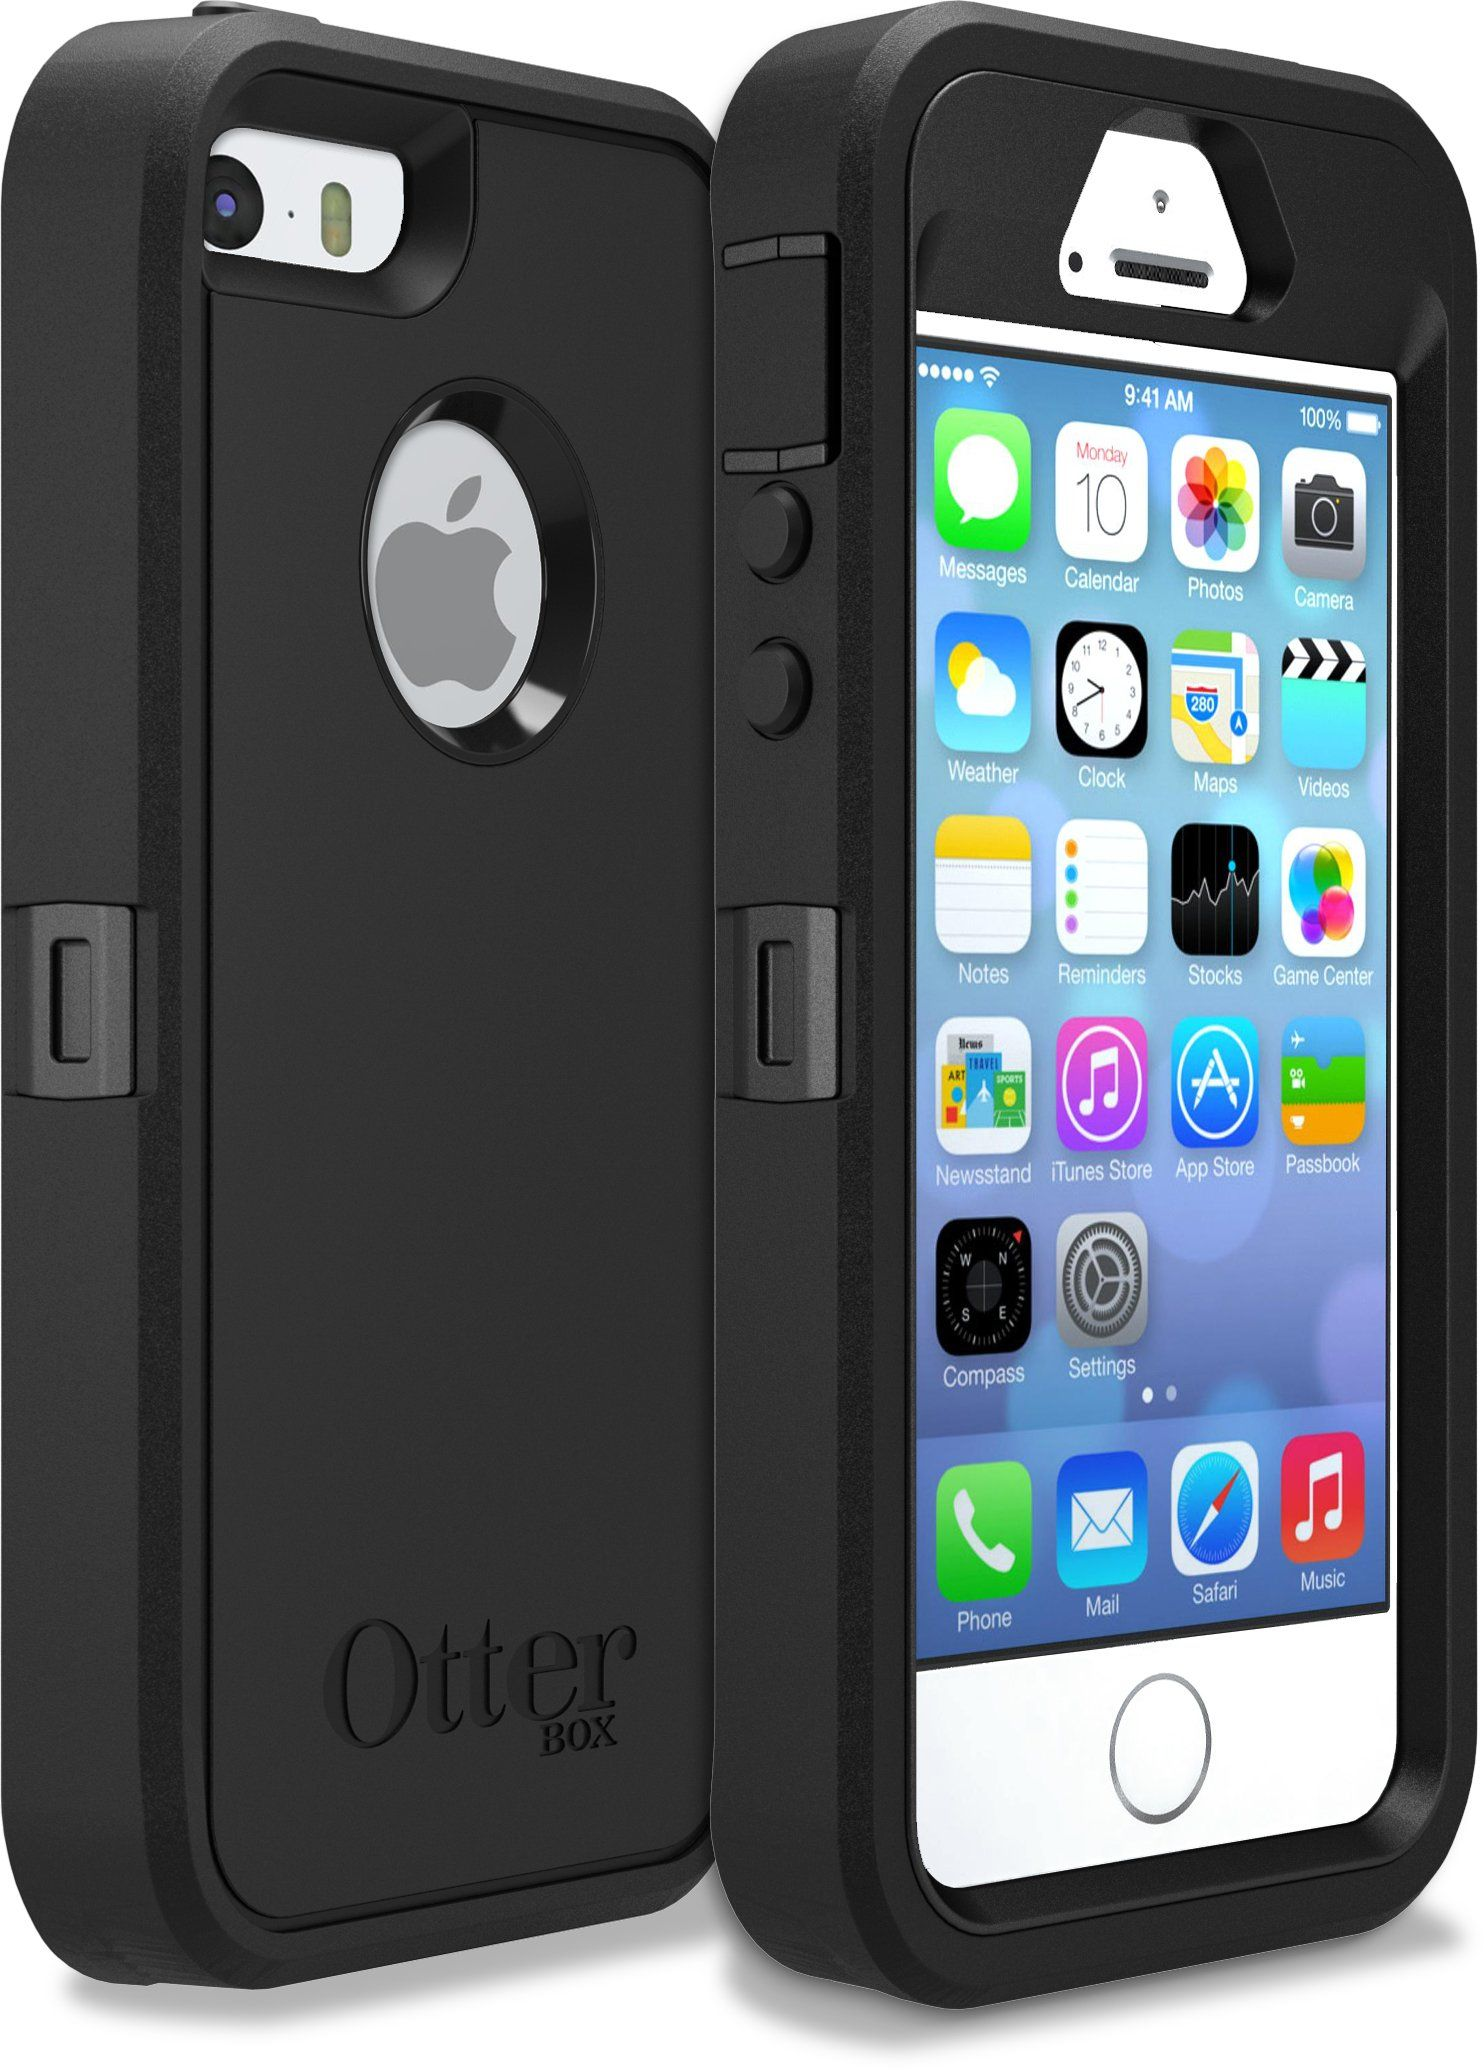 buy popular 88fda fe51a OtterBox [Defender Series] Case for iPhone 5c - Retail Packaging ...